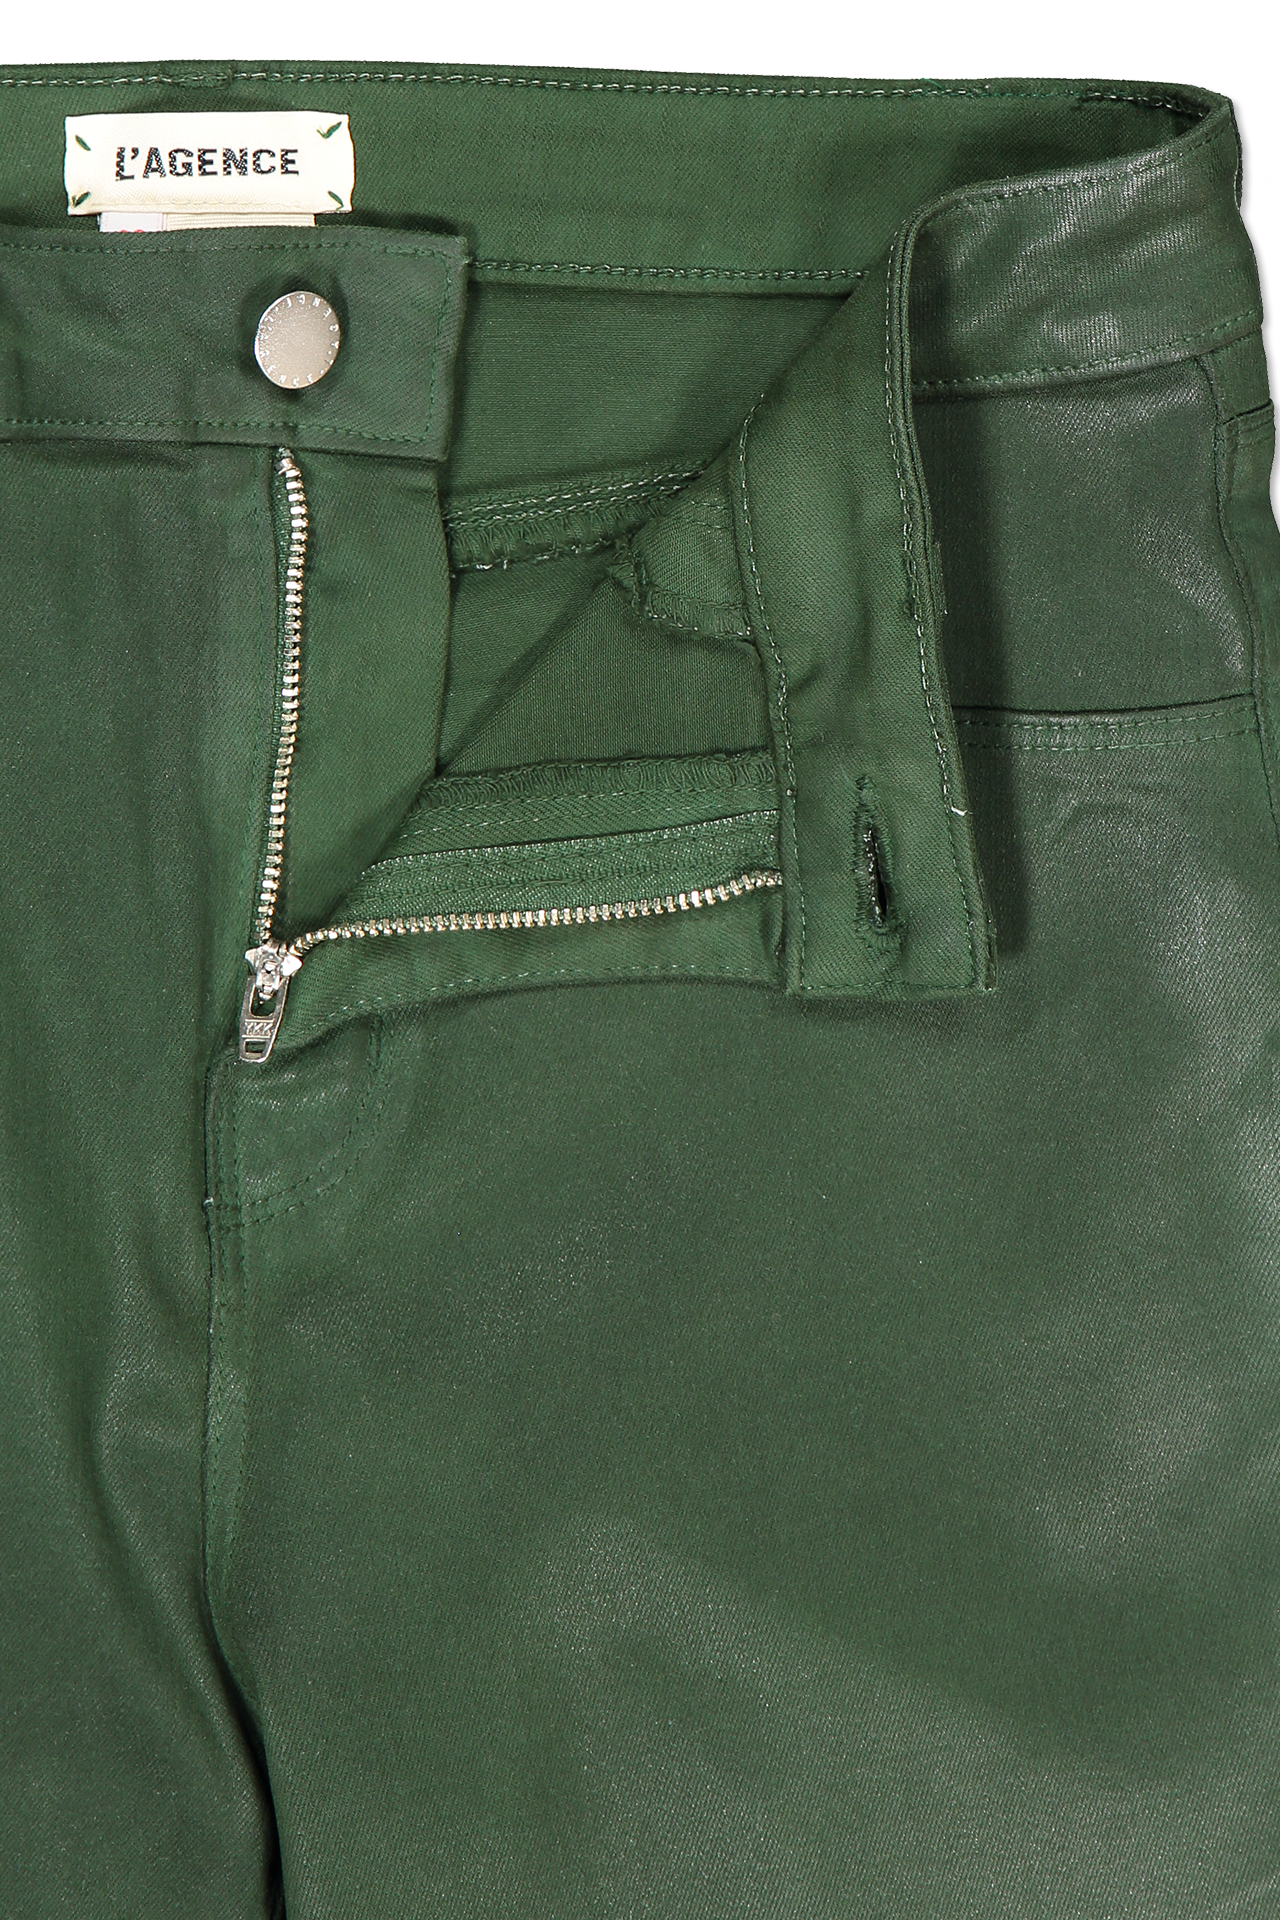 Waistline and zipper detail image of L'AGENCE Marguerite High Rise Skinny Moss Coated